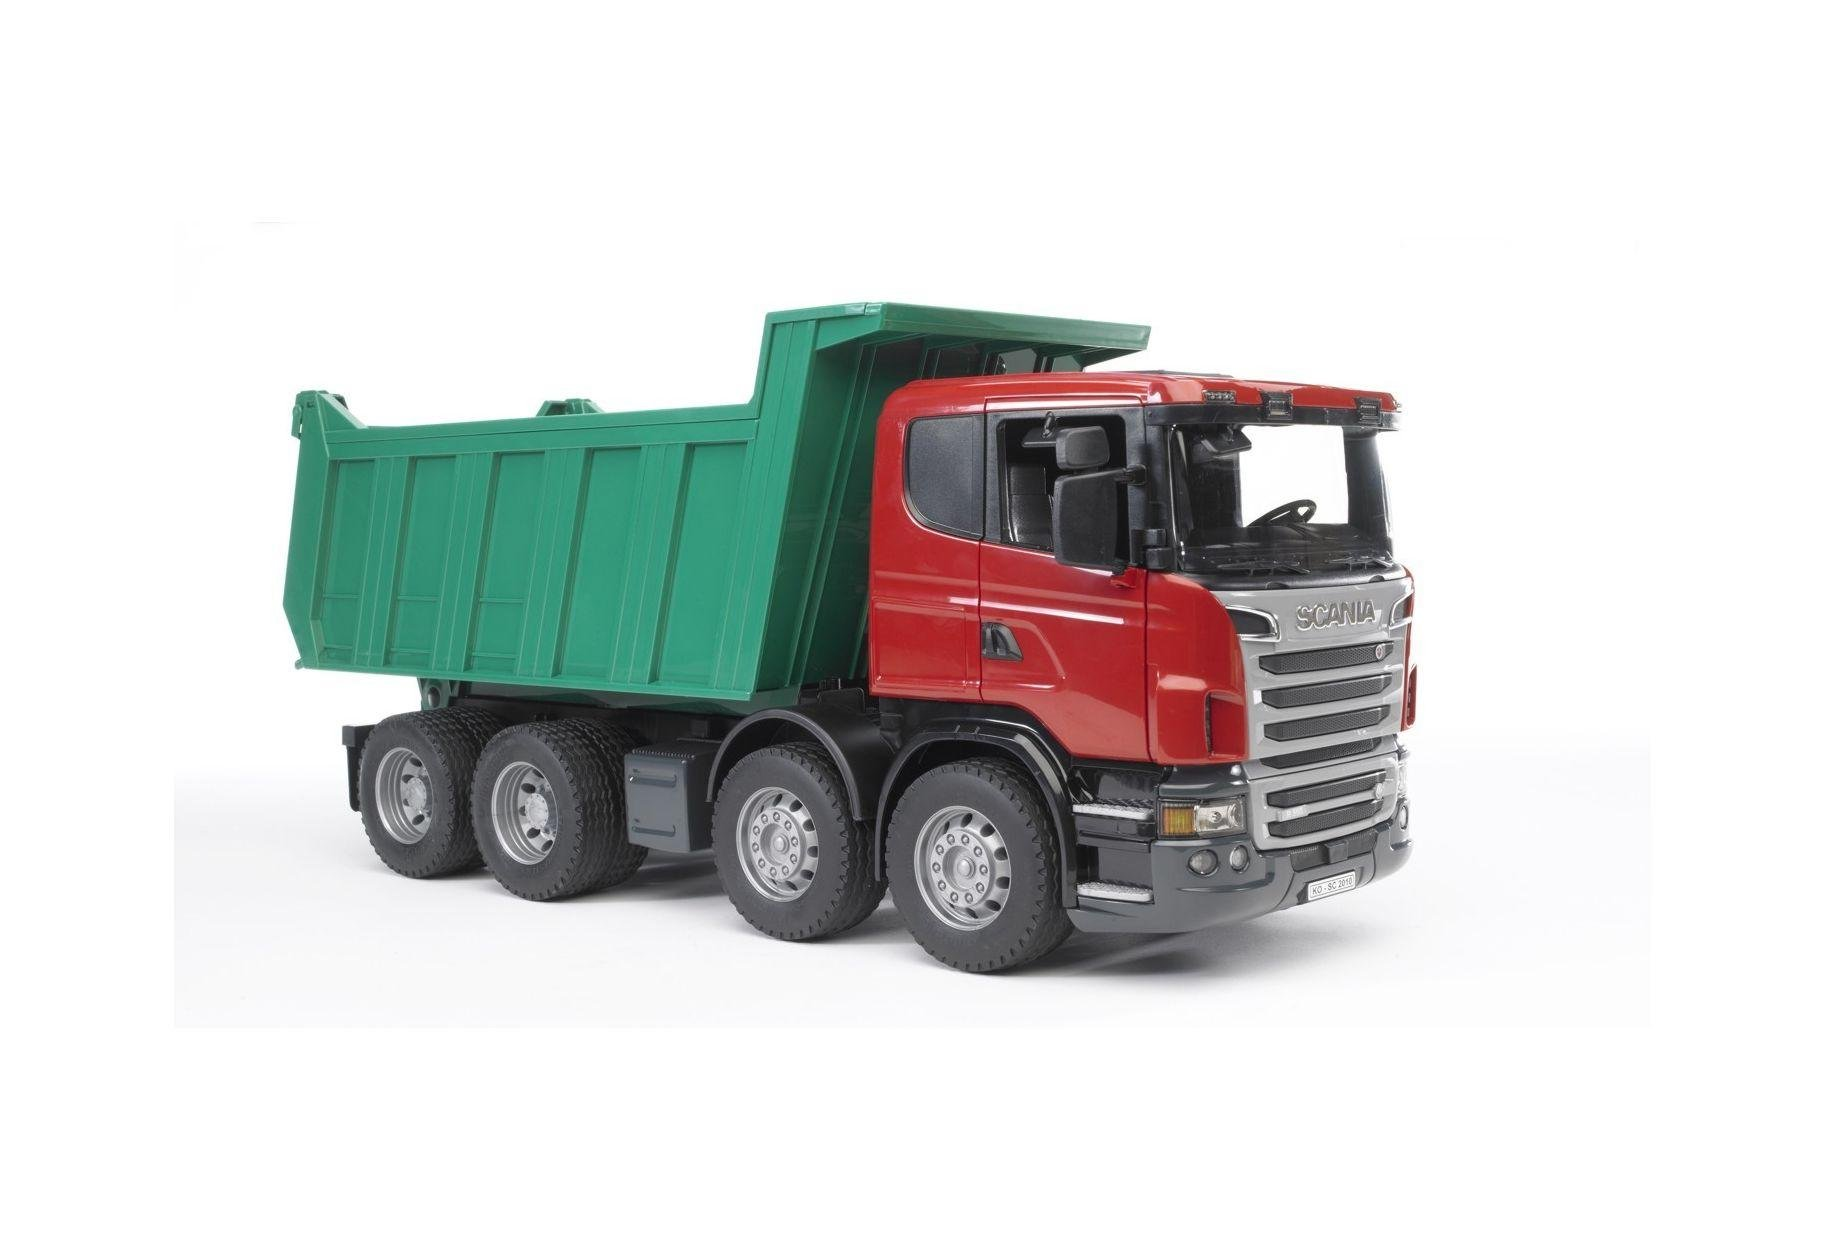 Image of Bruder 03550 Scania R-Series Tipper Truck.